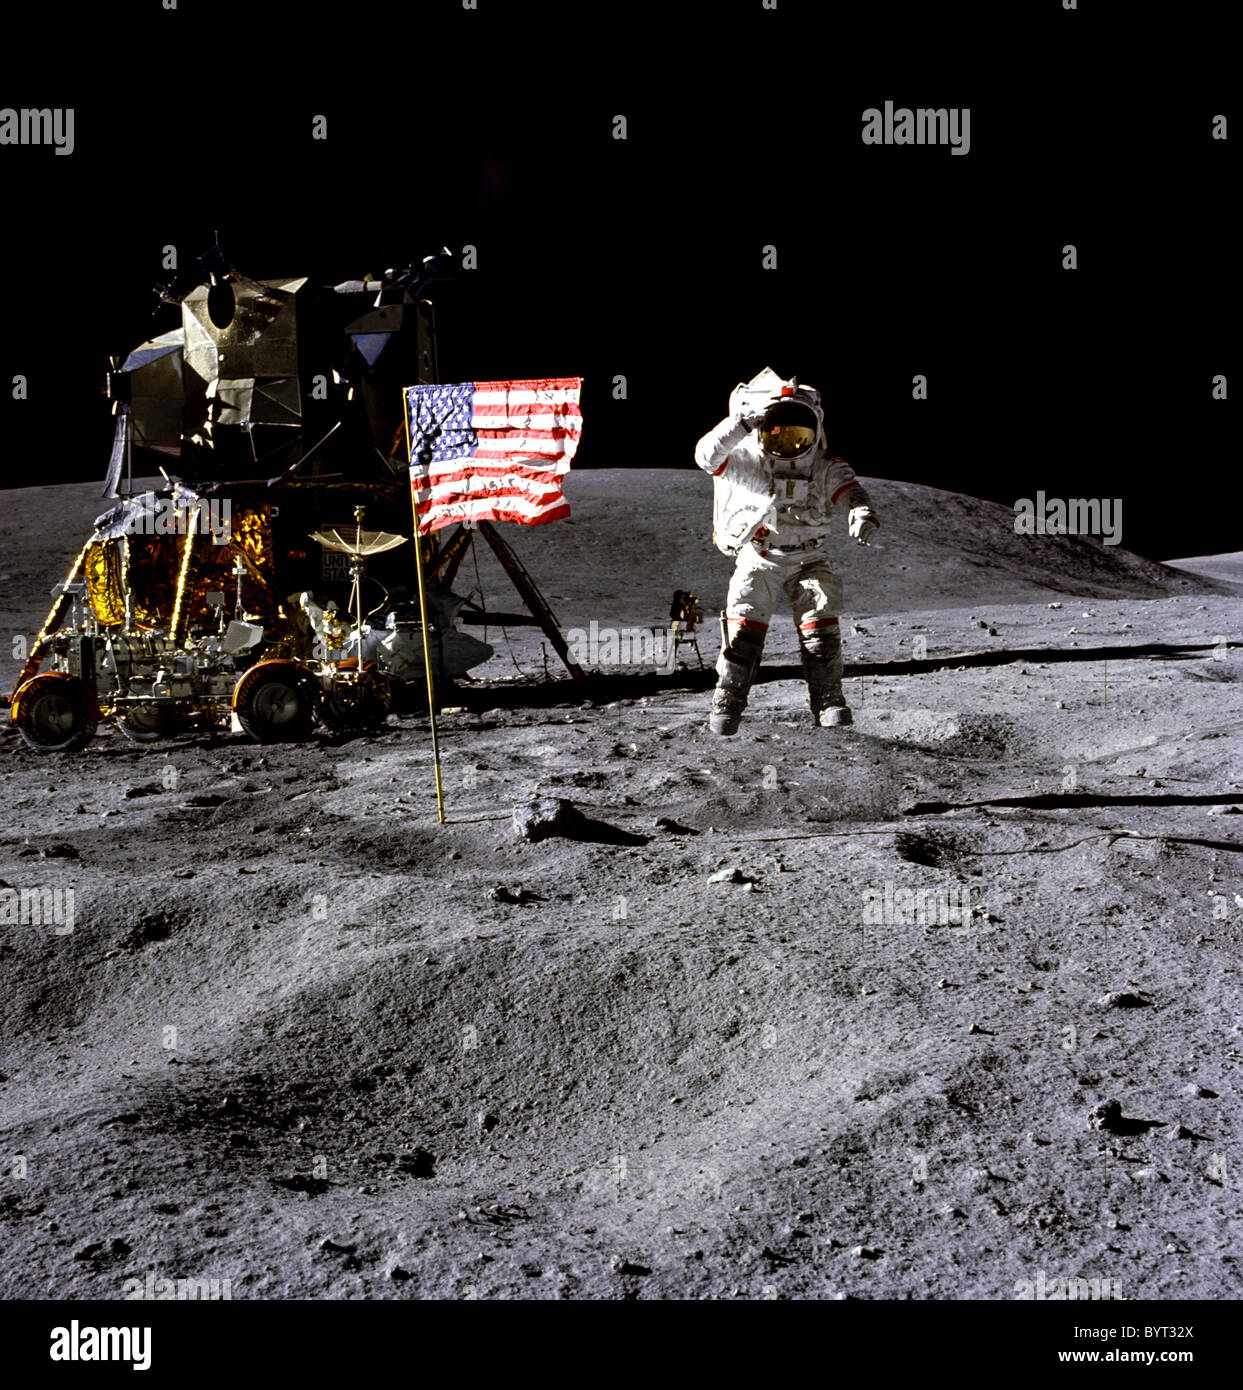 Astronaut John W. Young jumps and salutes the U.S. flag during the Apollo 16 lunar landing mission. - Stock Image